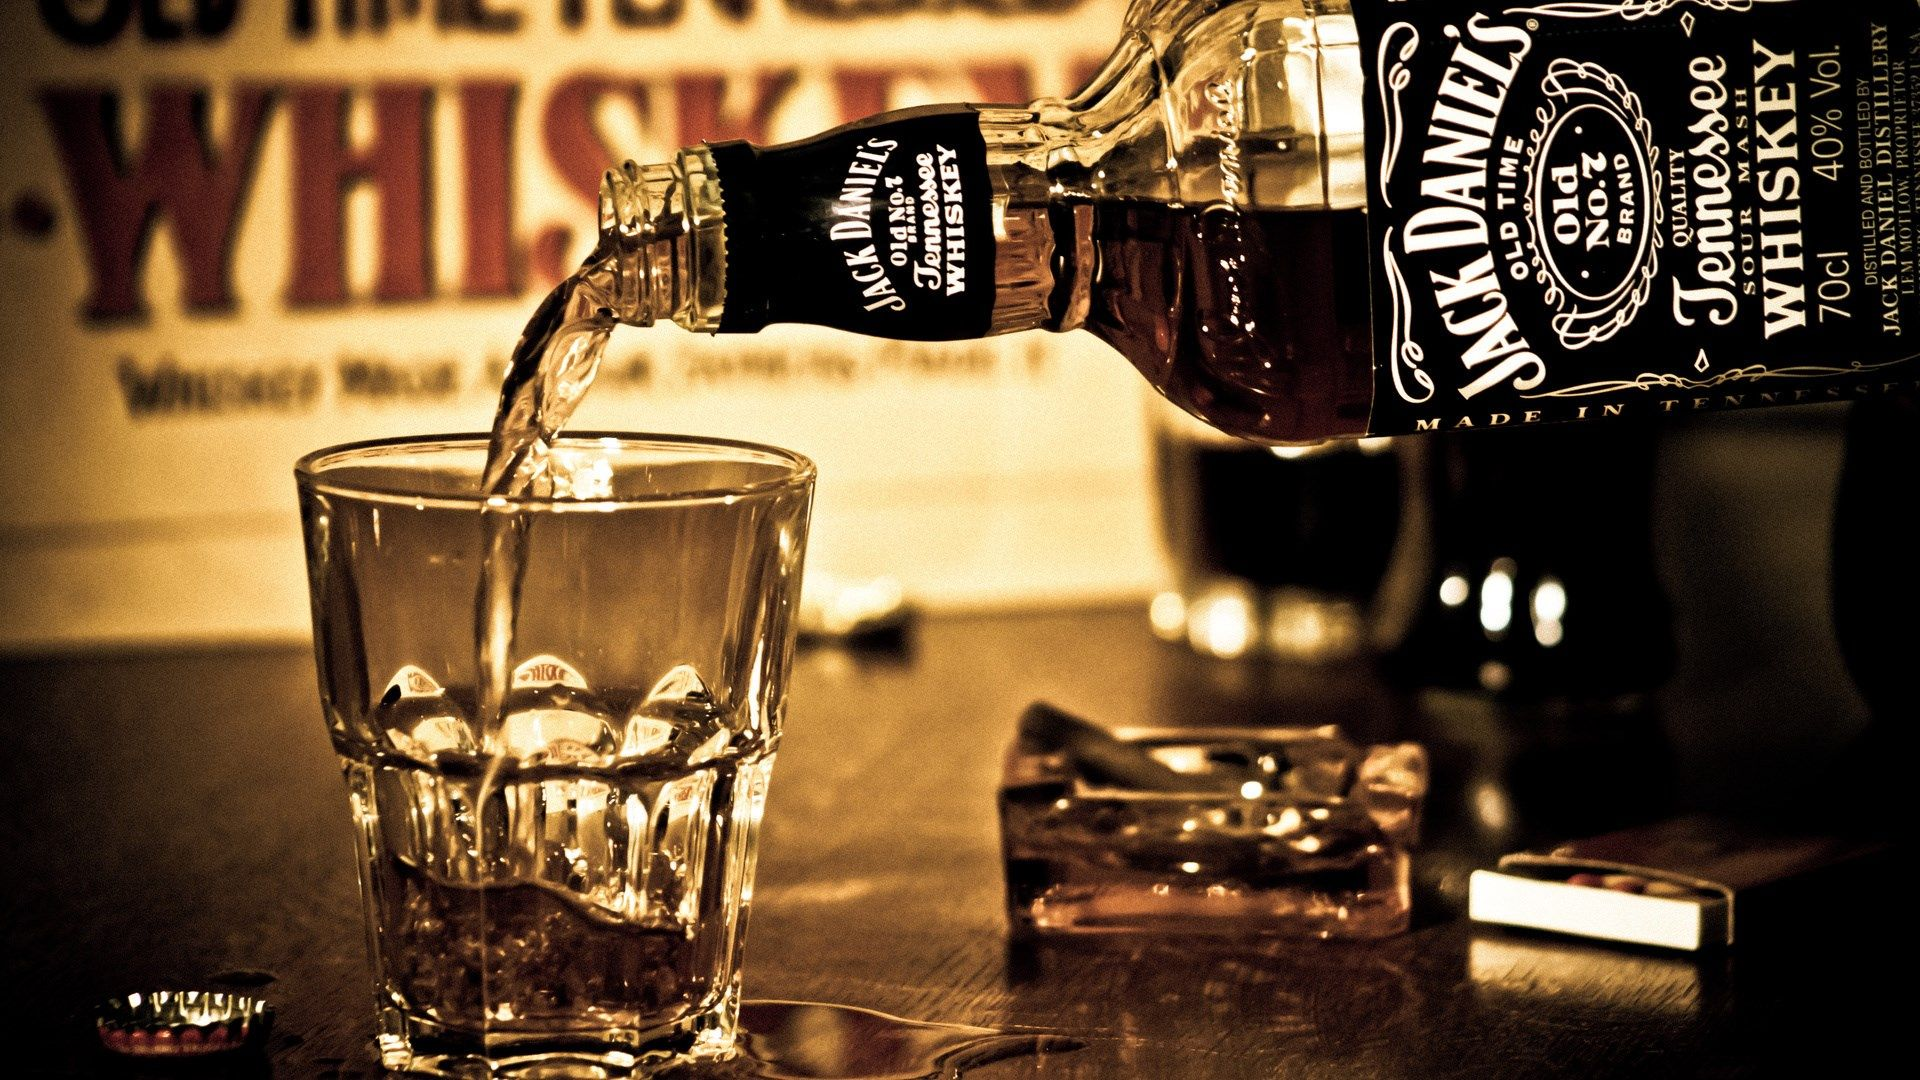 Backgrounds High Resolution: jack daniels picture - jack daniels ...